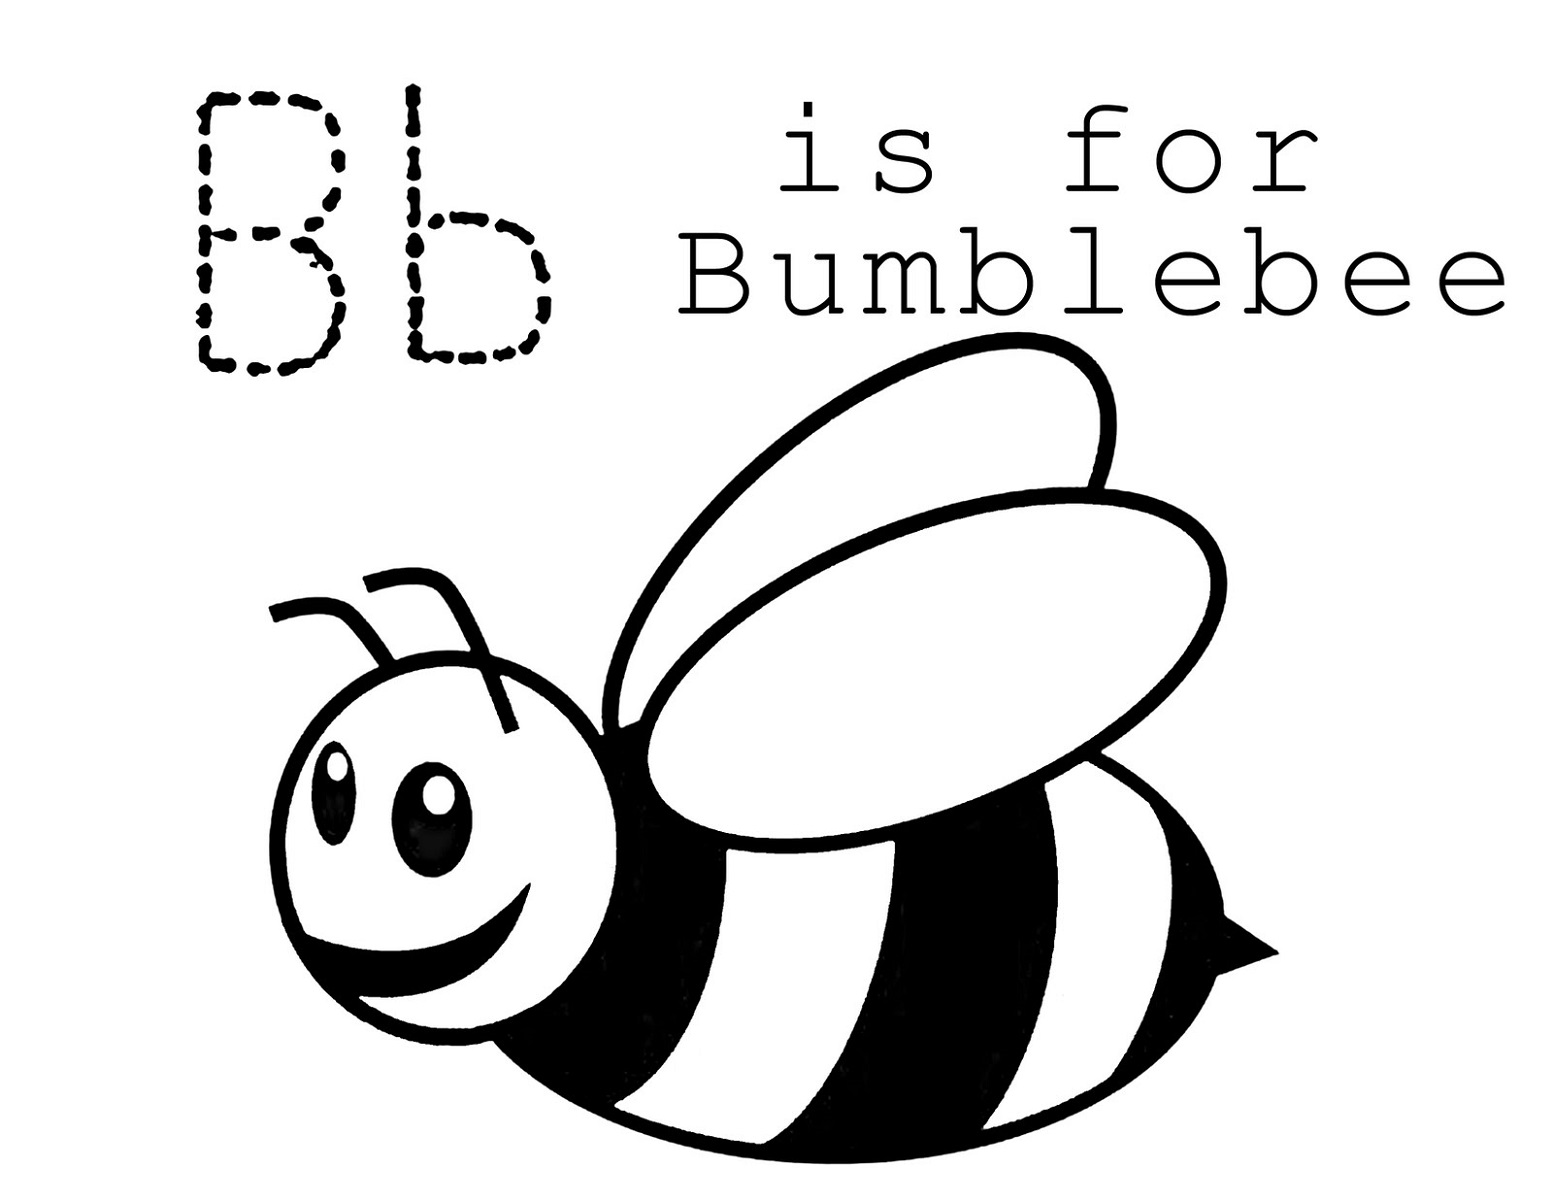 trace-letter-b-bumblebee Teachers Alphabet Letter Templates on for tracing, medium printable, free printable large,